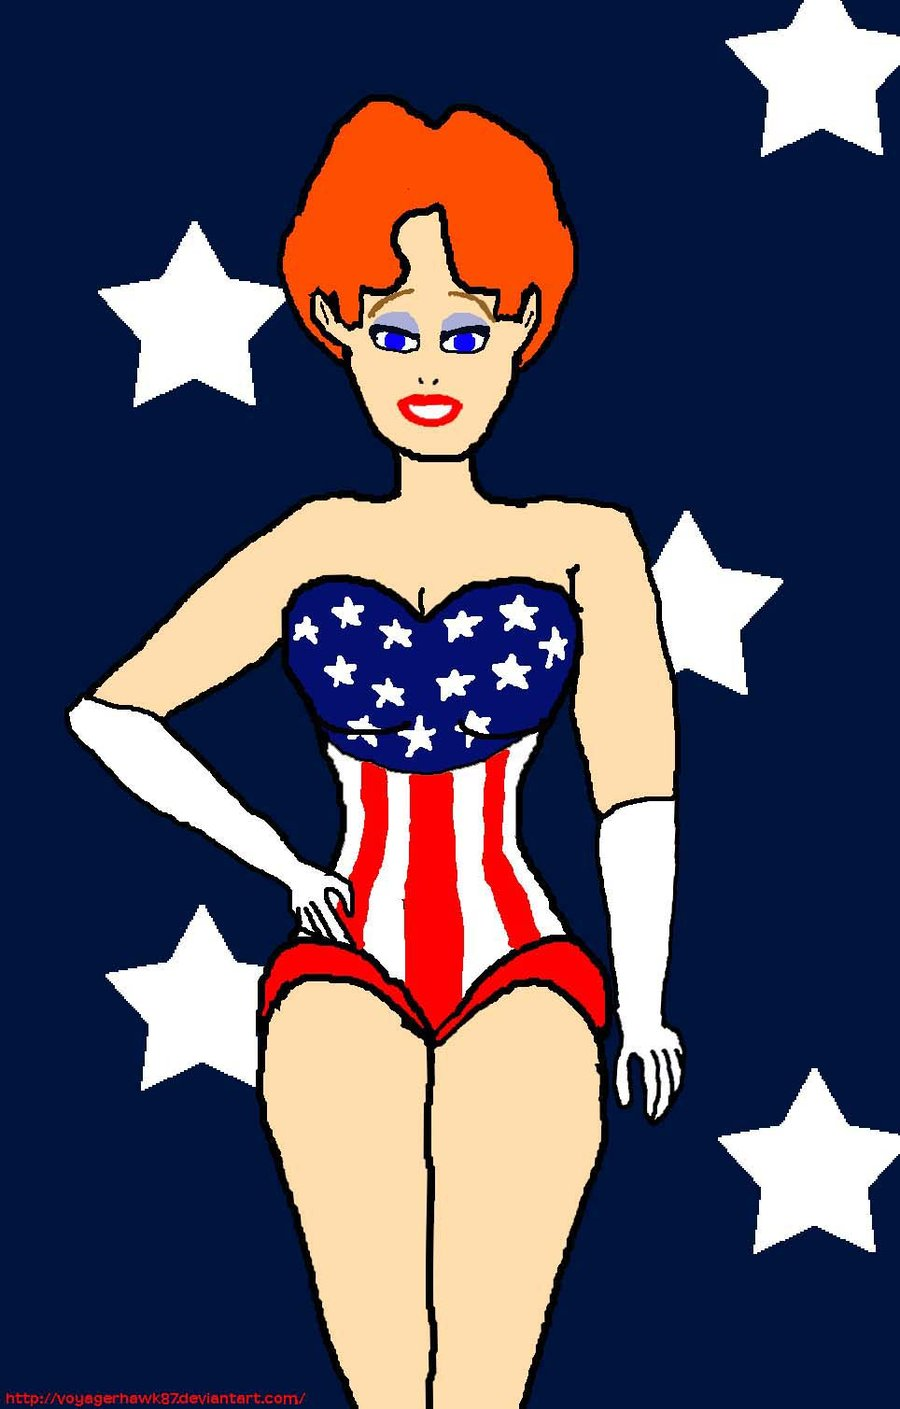 Drawn pin up  4th july On Pin Up: Riding Hot